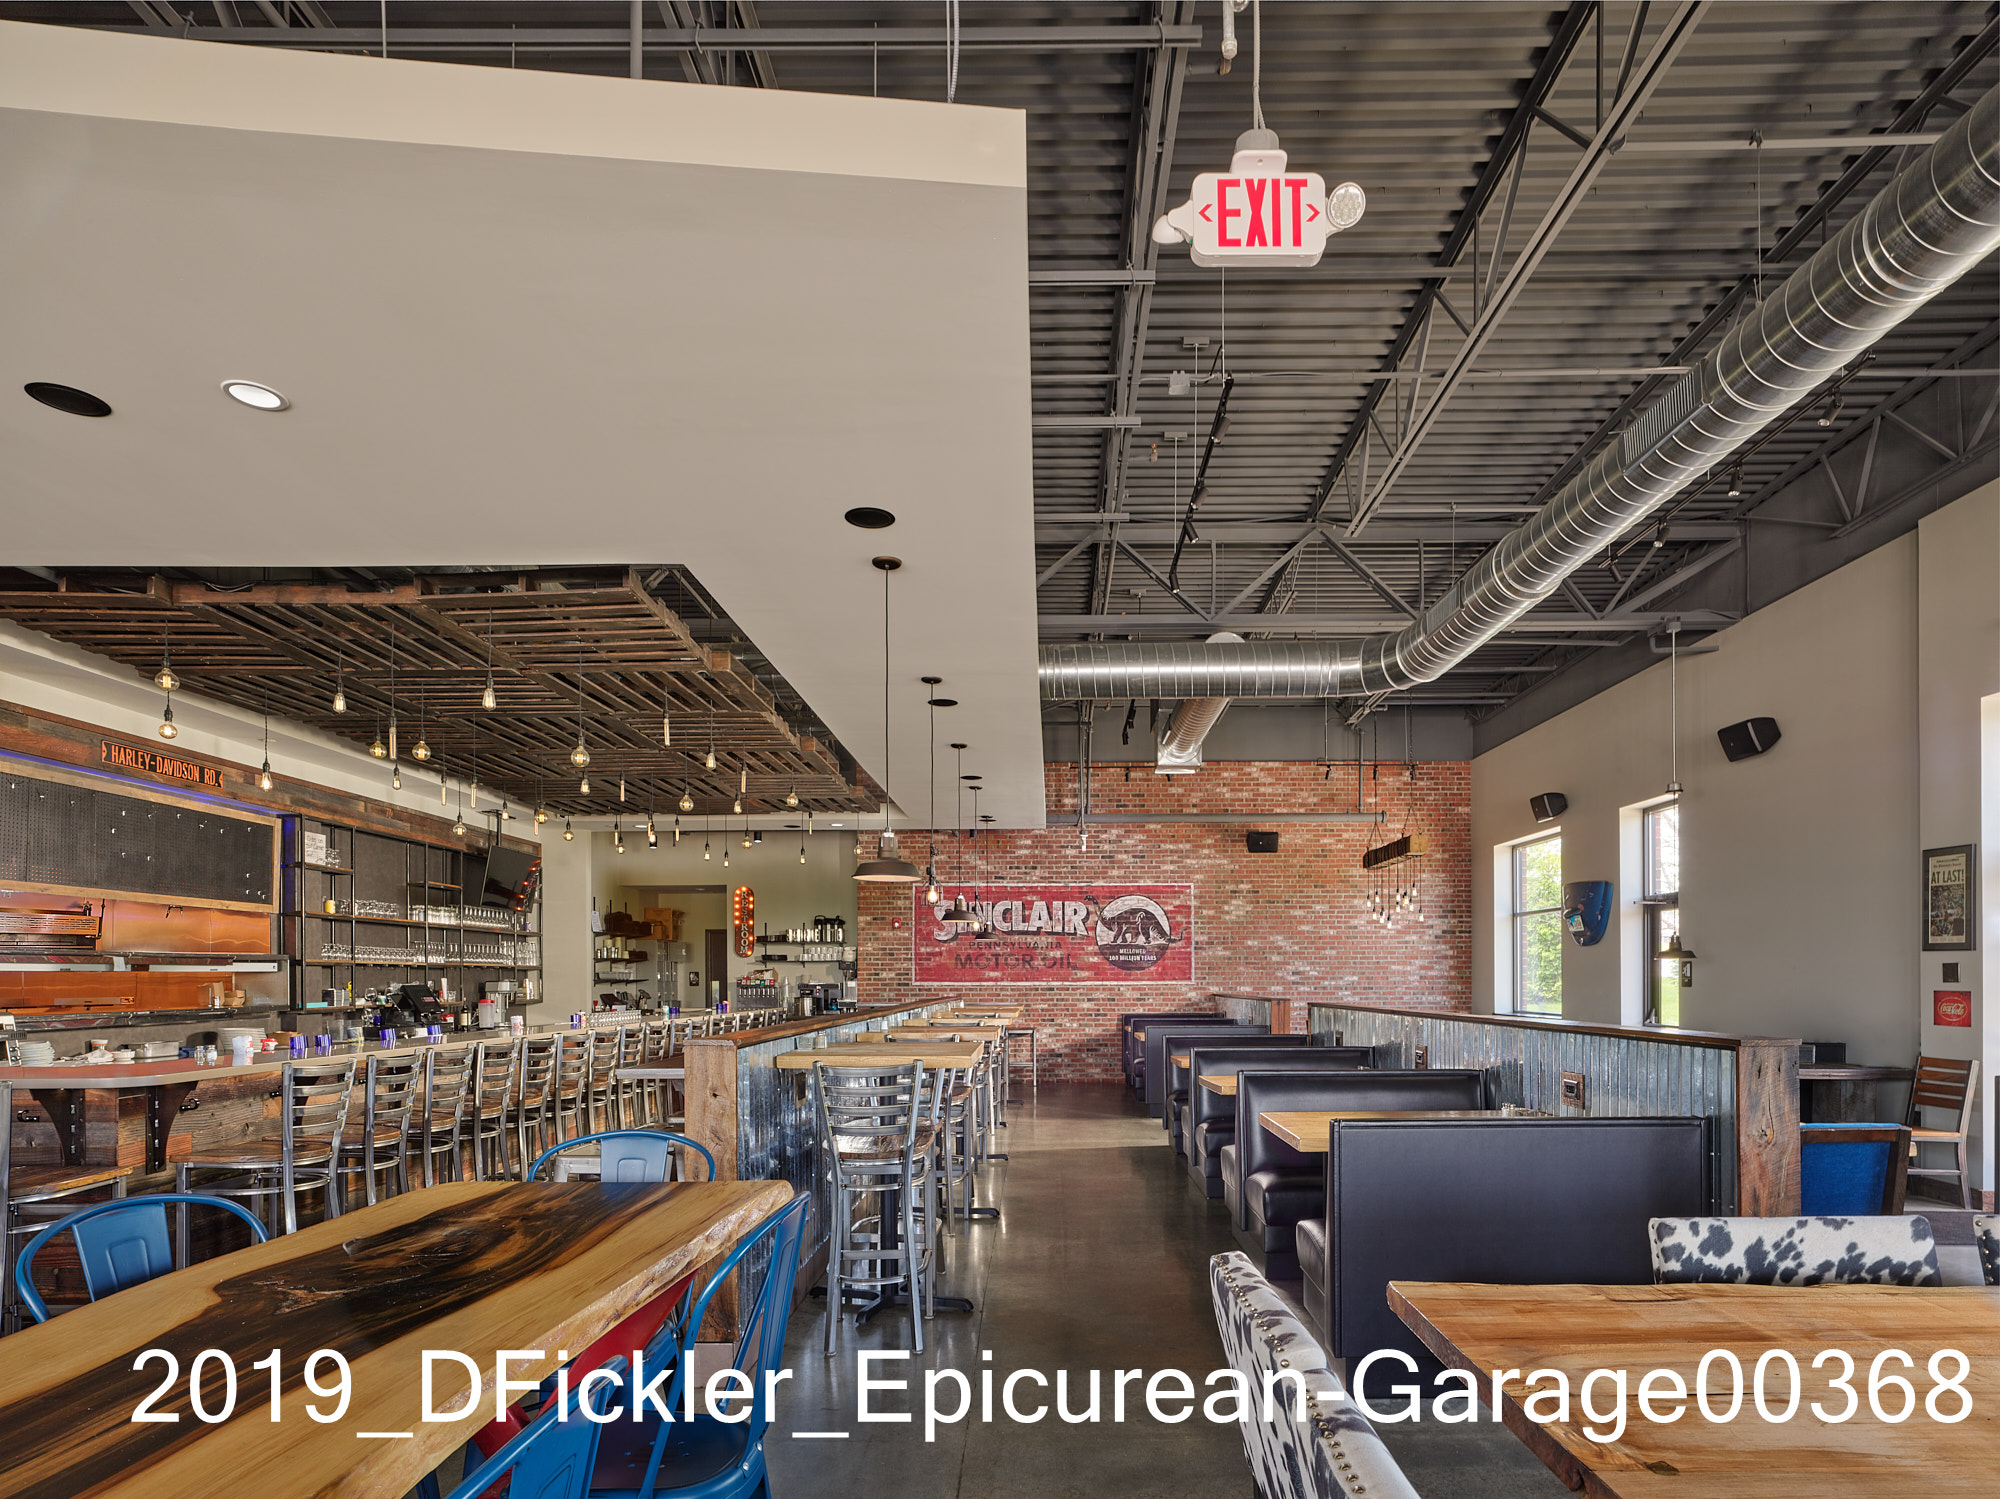 2019_DFickler_Epicurean-Garage00368.jpg